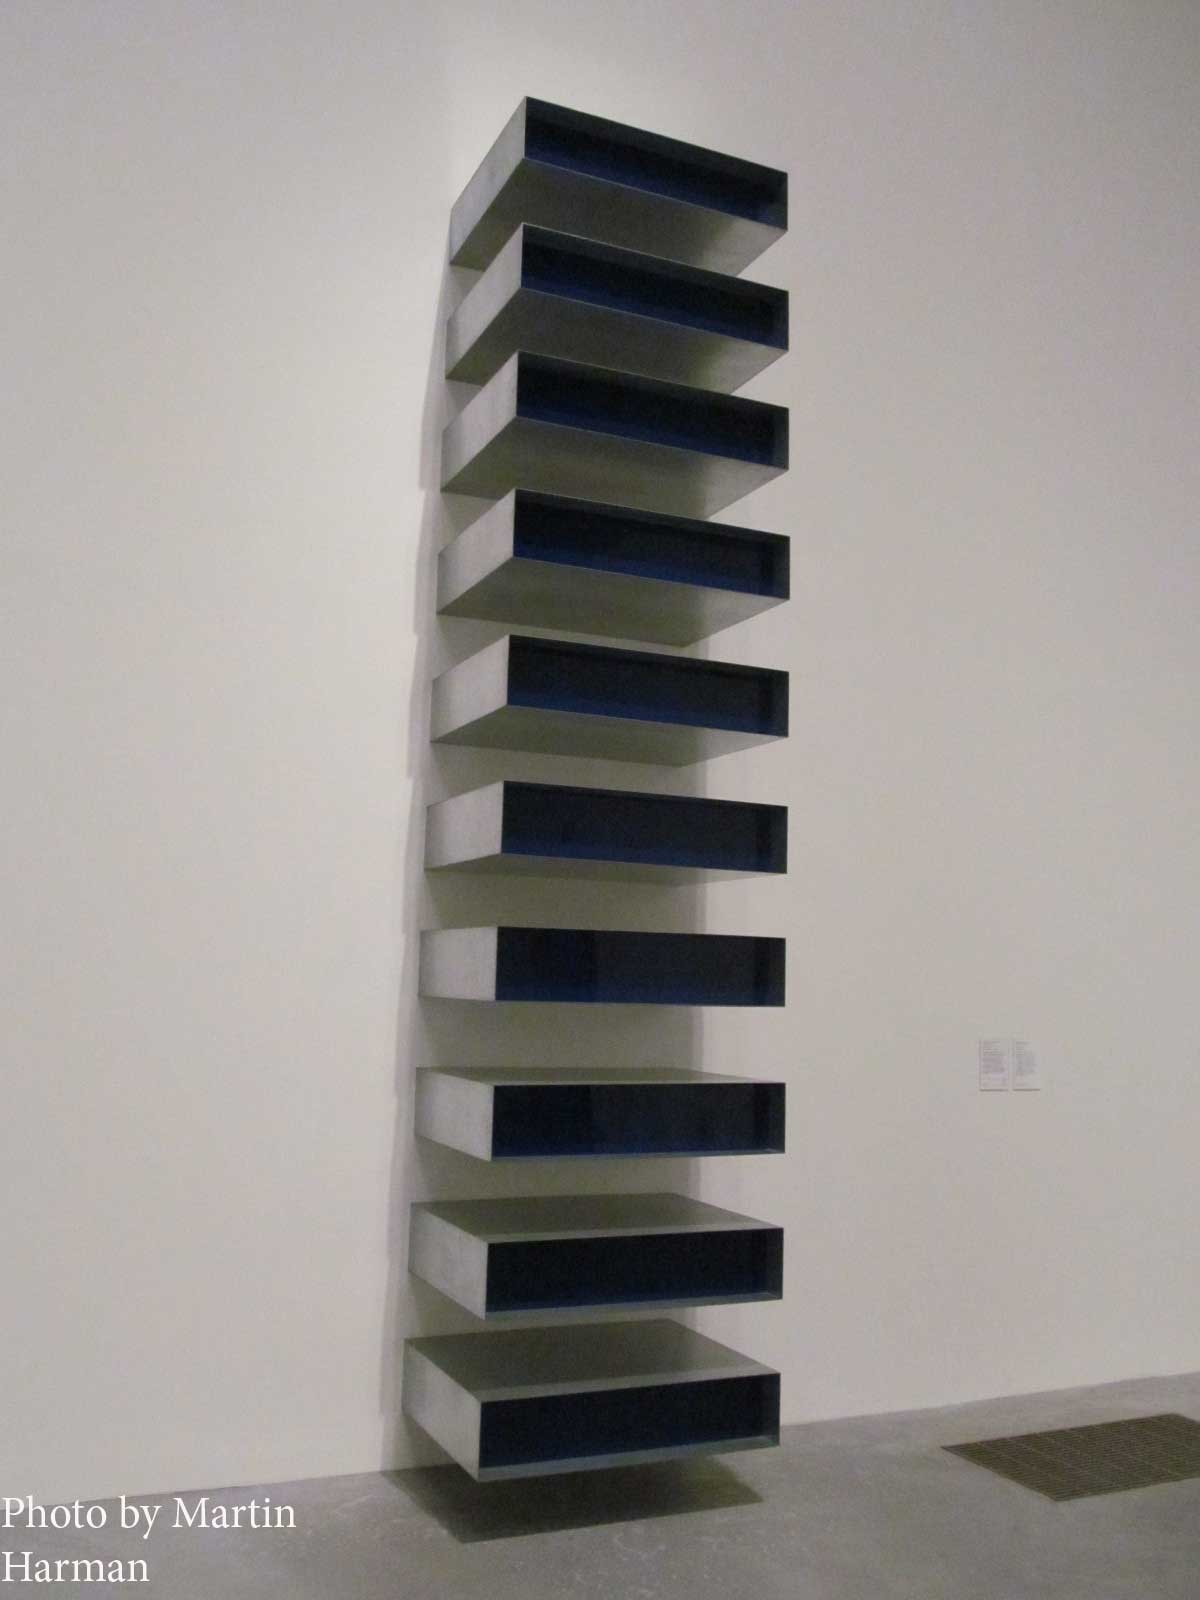 Martin harman tate modern london november 27 2012 for Donald judd stack 1972